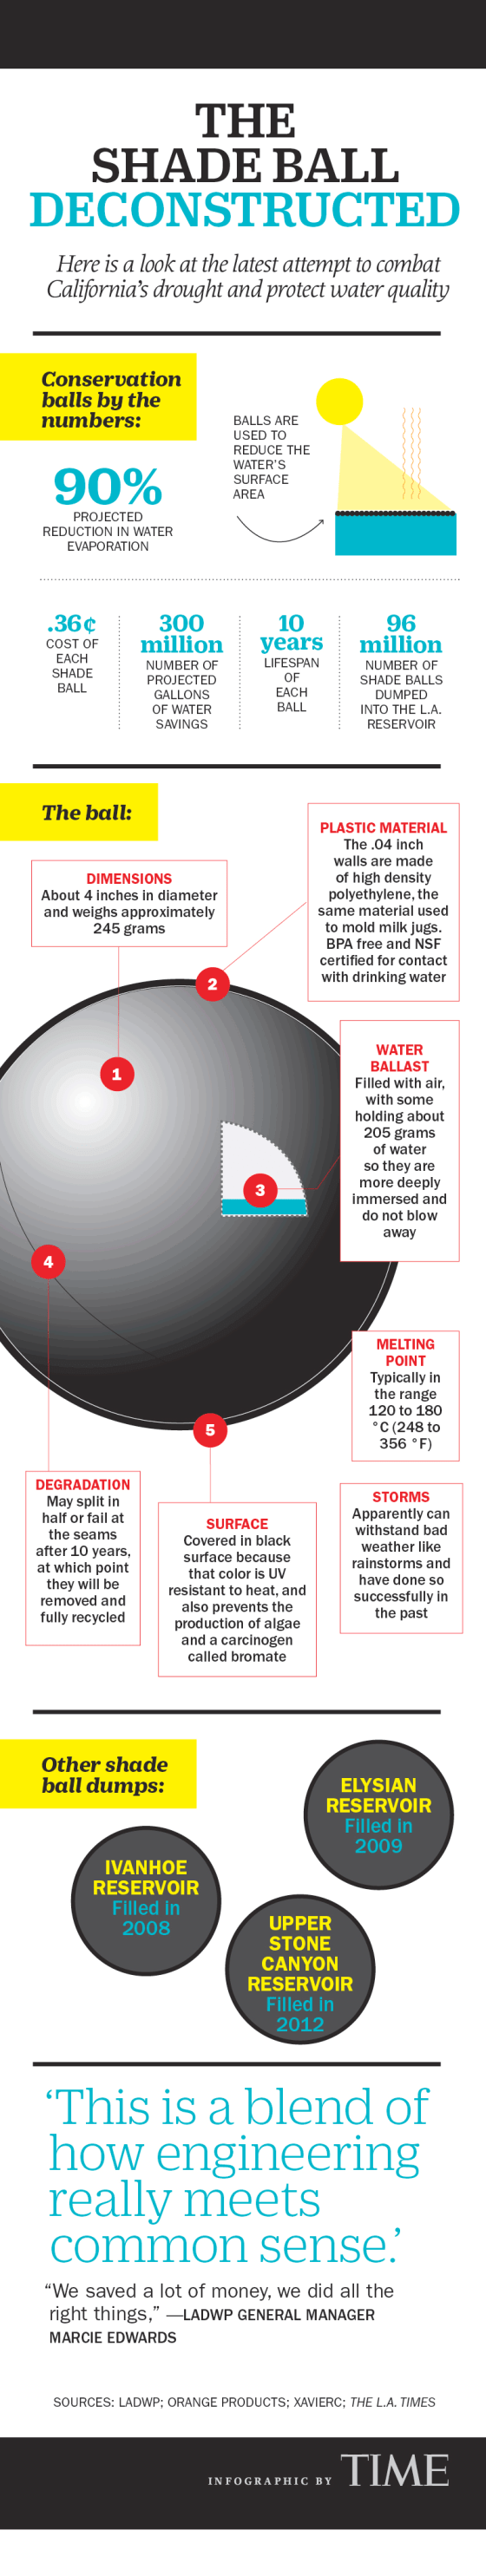 Shade Ball Deconstructed Infographic